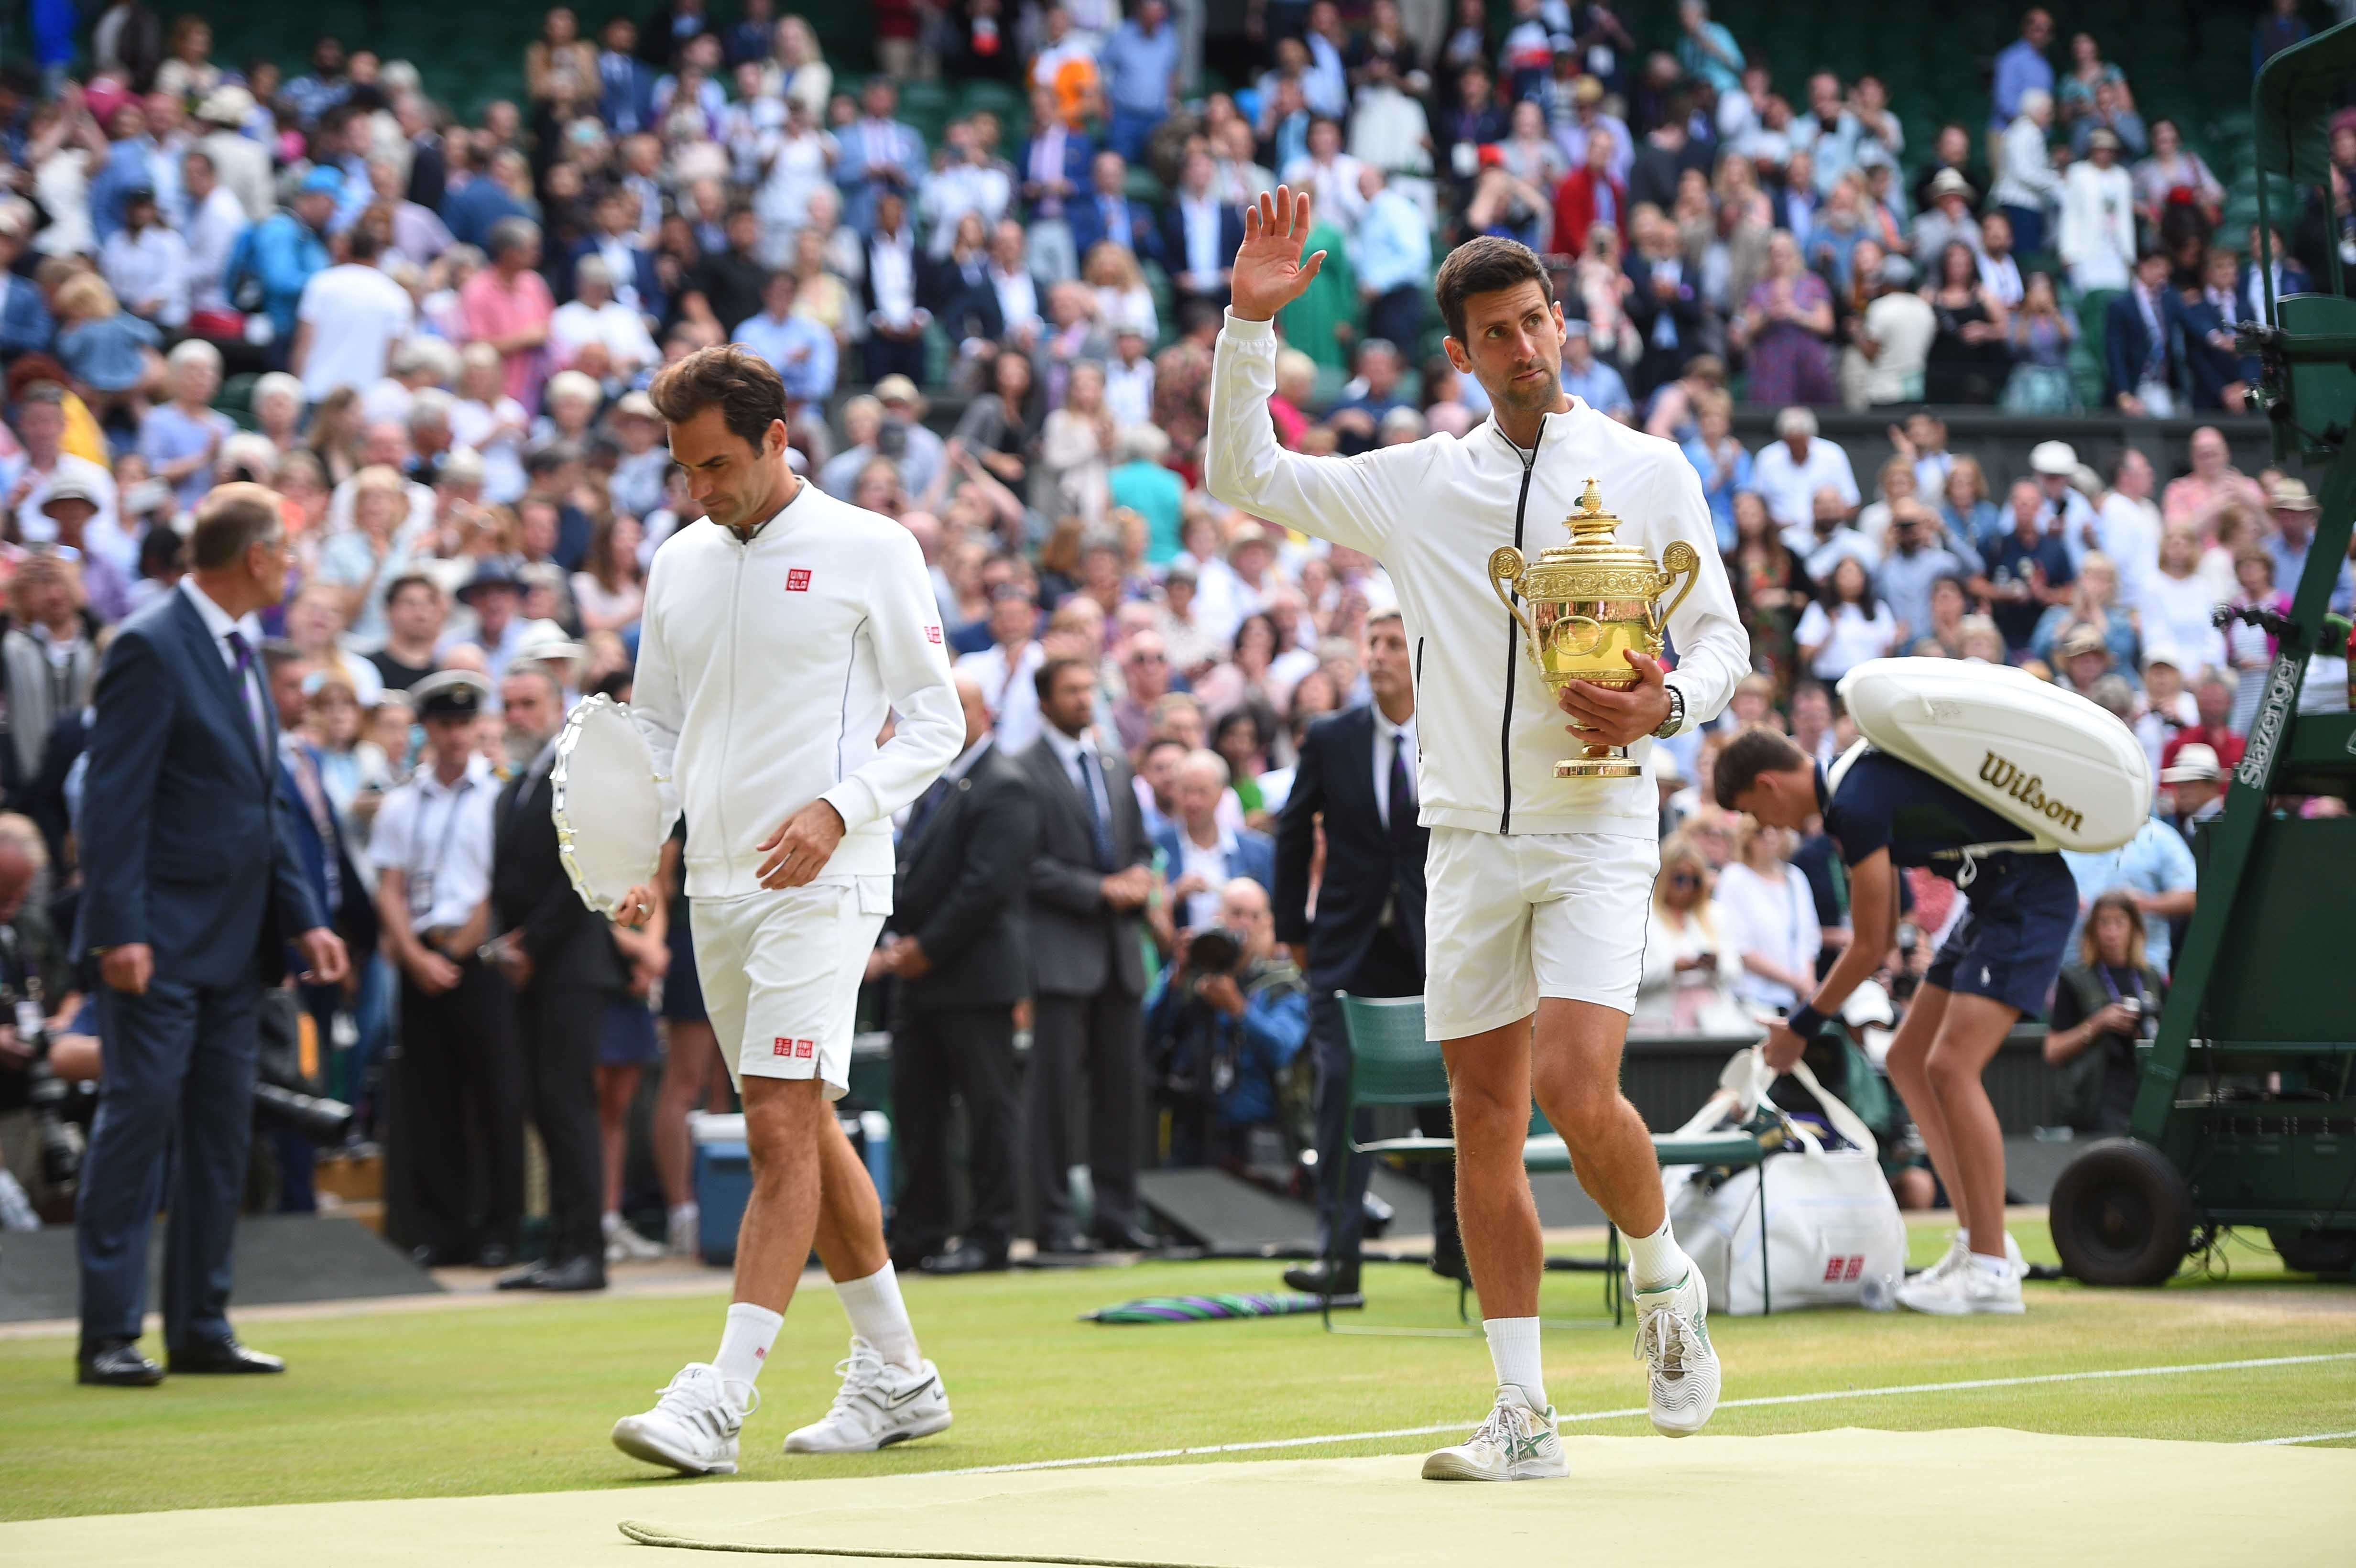 Novak Djokovic and Roger Federer walking with their trophies after the presentation at Wimbledon 2019